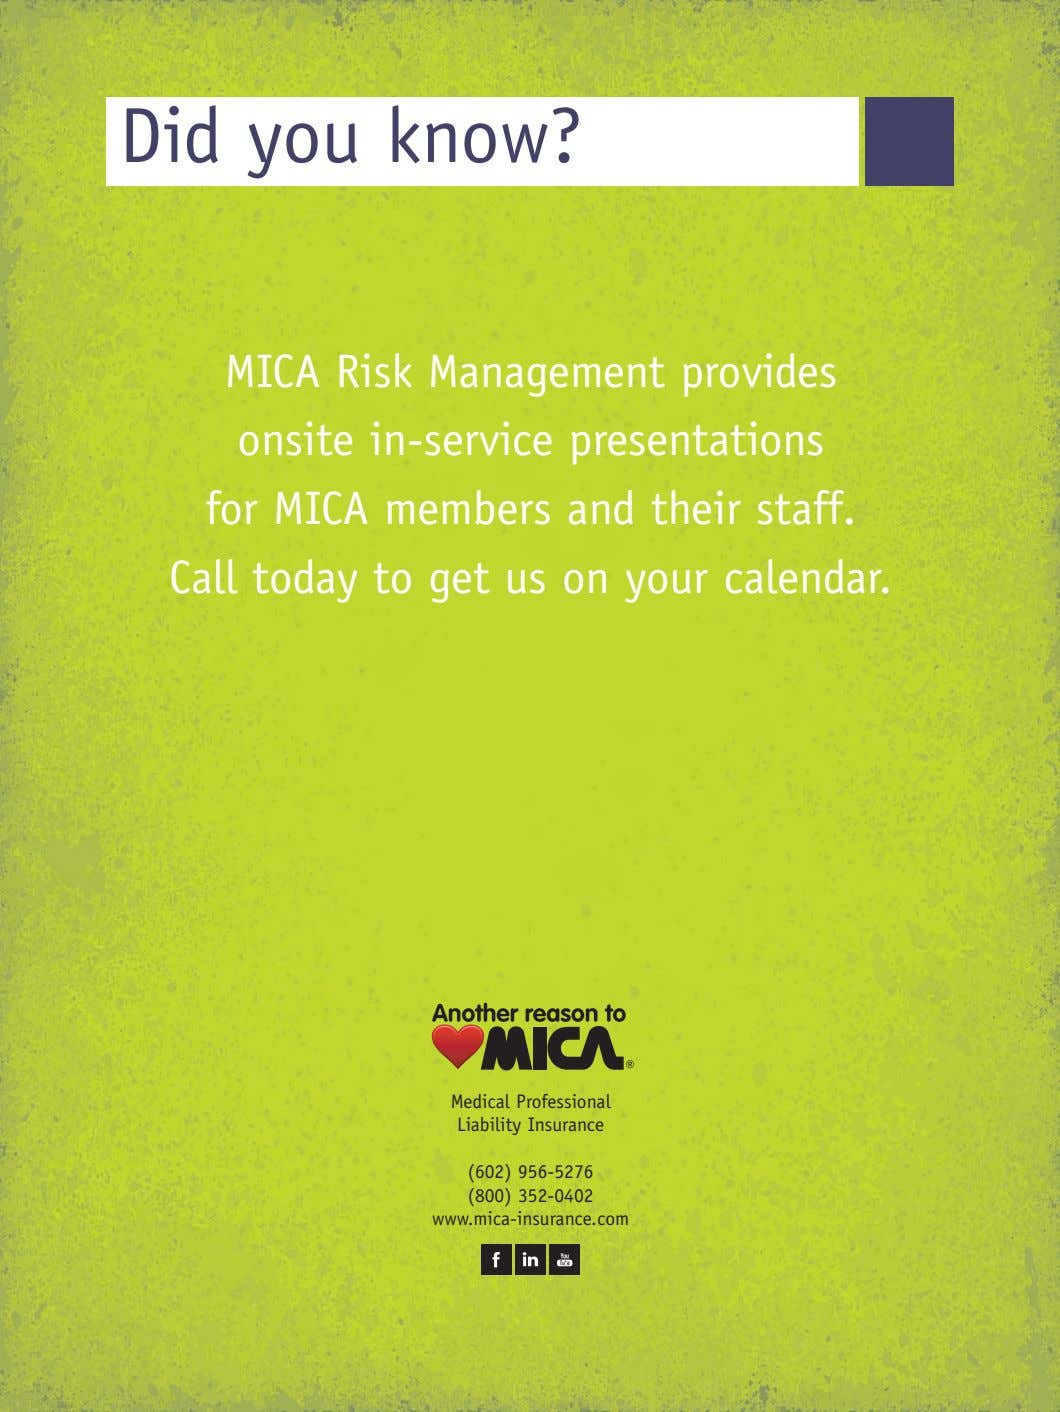 Did you know? MICA Risk Management provides onsite in-service presentations for MICA members and their